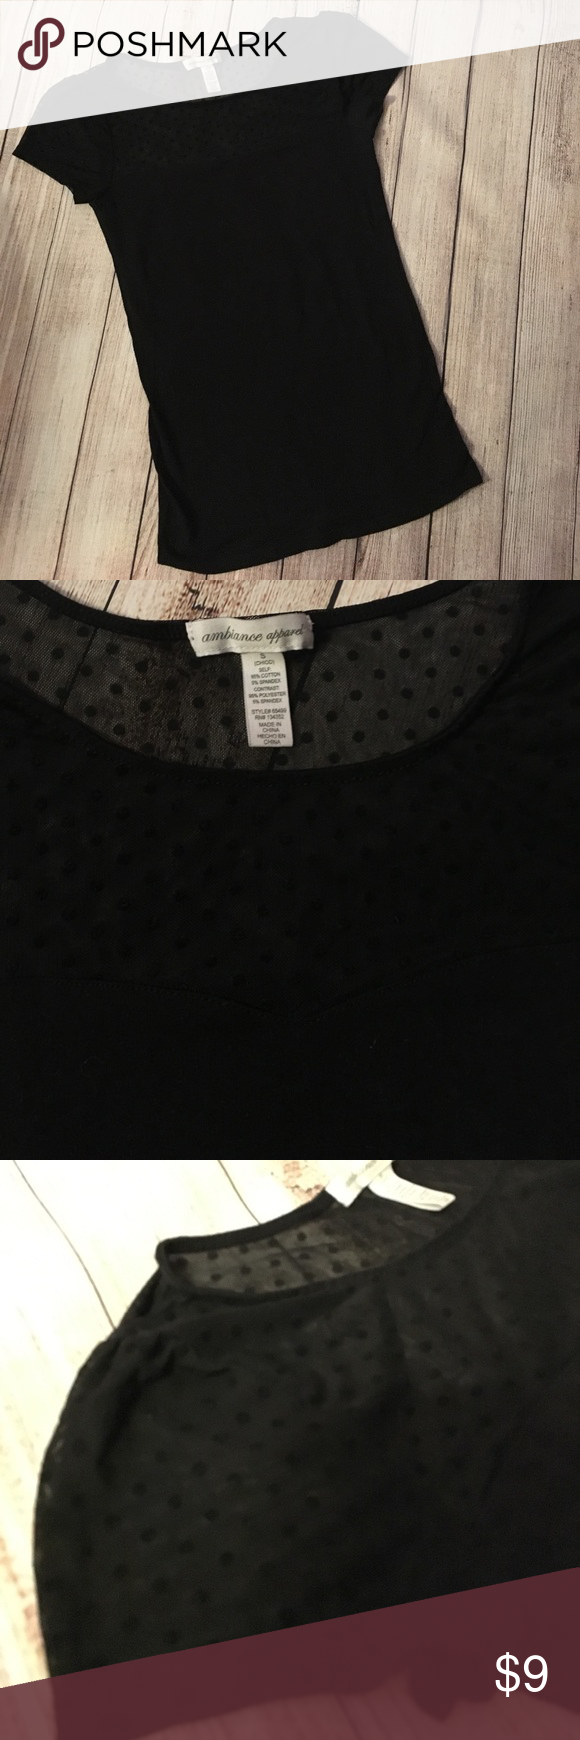 See through black Top/ tee small💞 New no tags, got it and never wore super cute see through mesh with polka dots in velvet material 💞 . Tops Tees - Short Sleeve